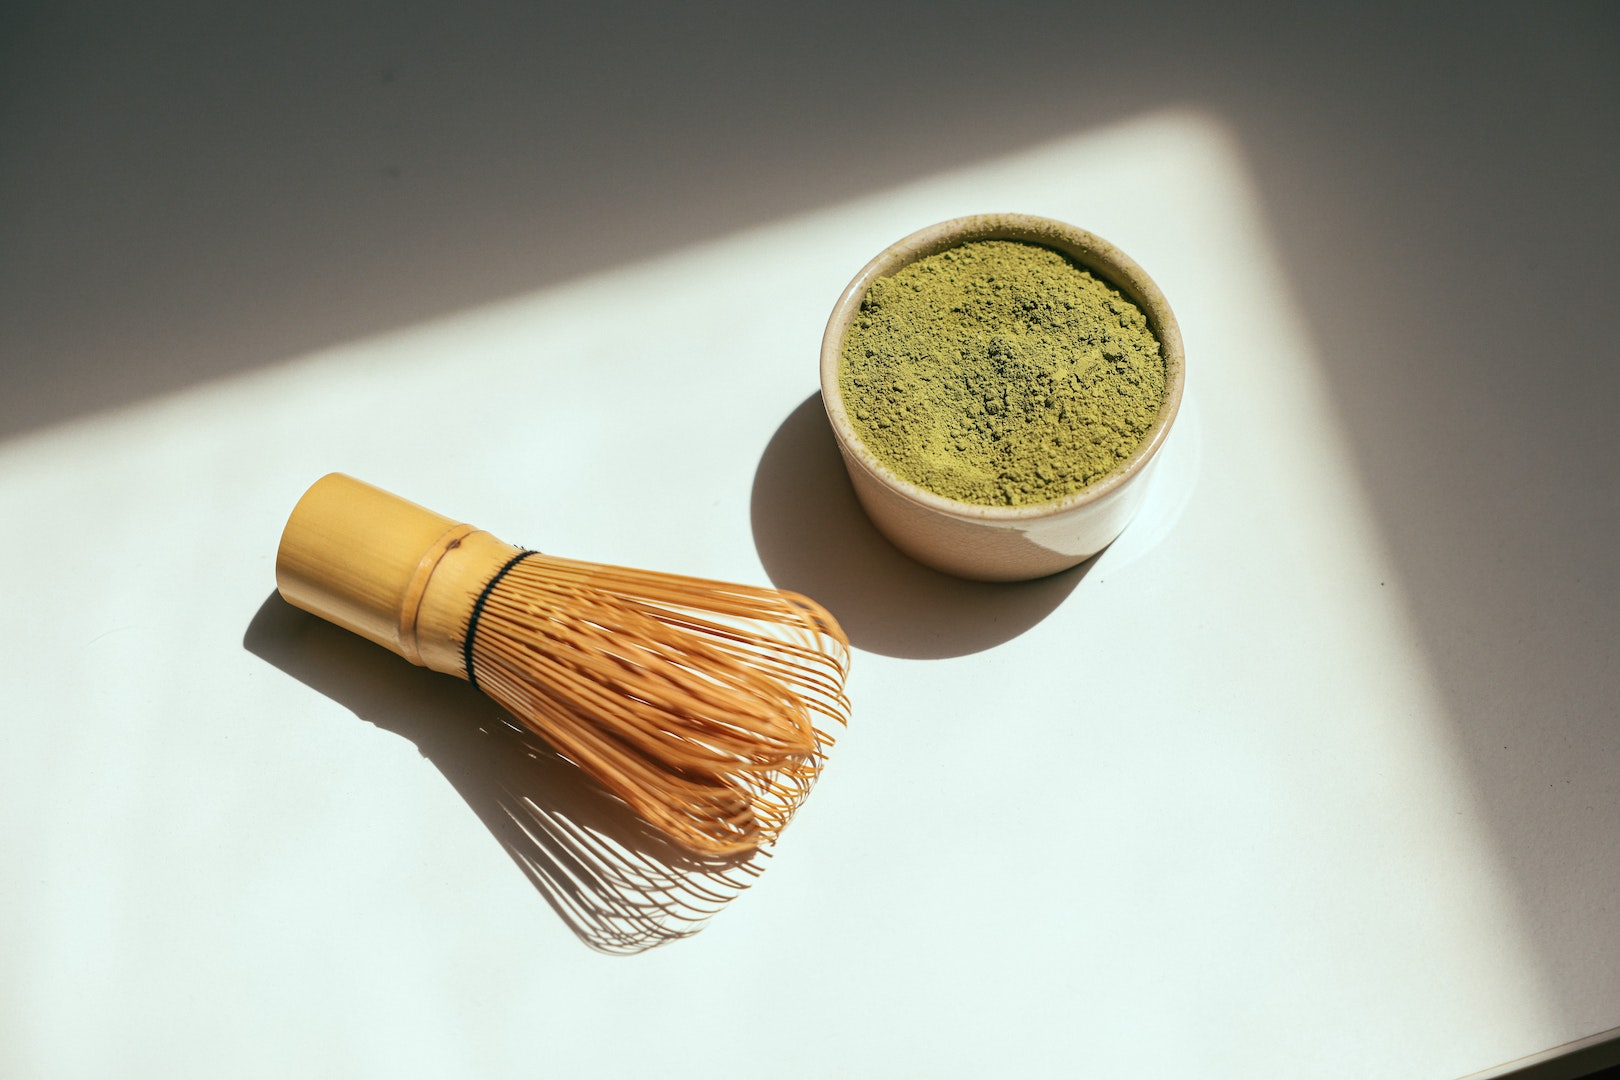 Image of matcha, used for LĒVO's DIY coconut oil face mask recipe.